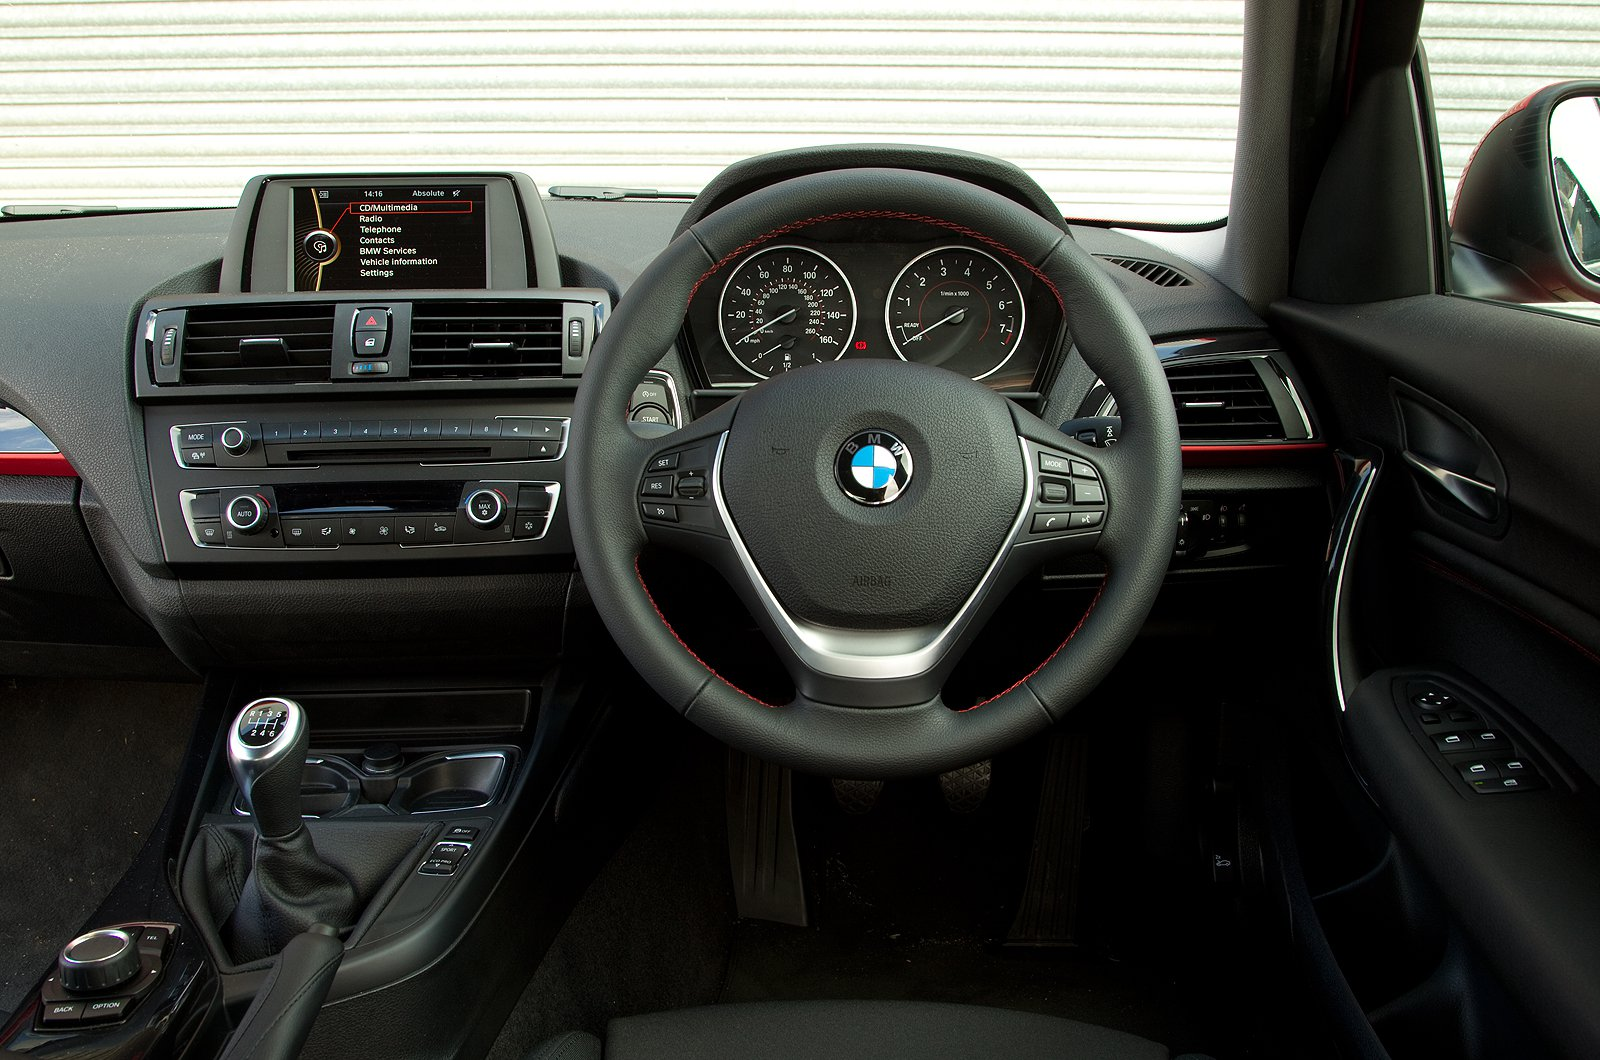 BMW 1 Series - interior